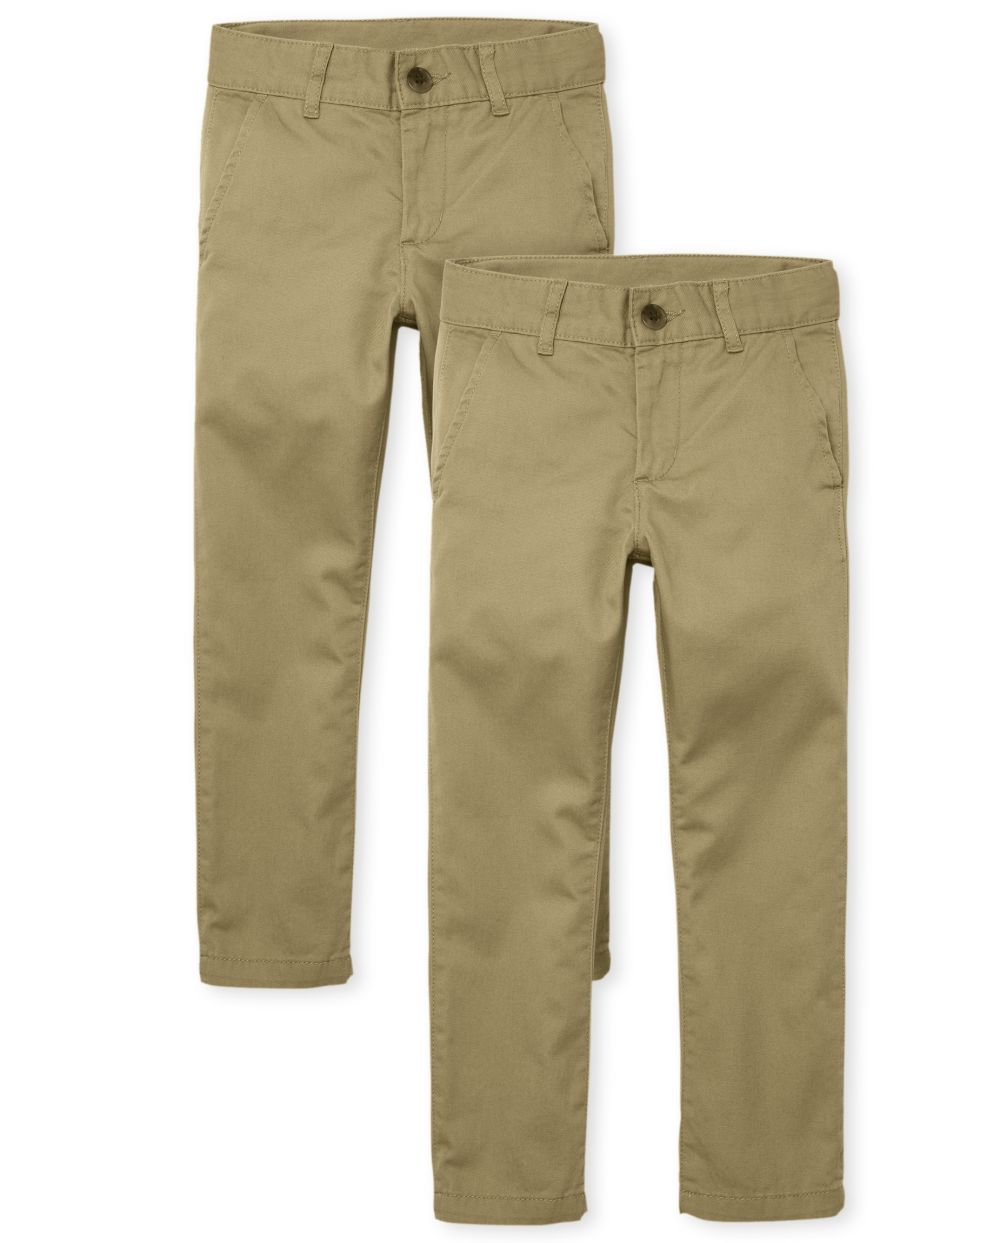 Boys Uniform Skinny Chino Pants 2-Pack